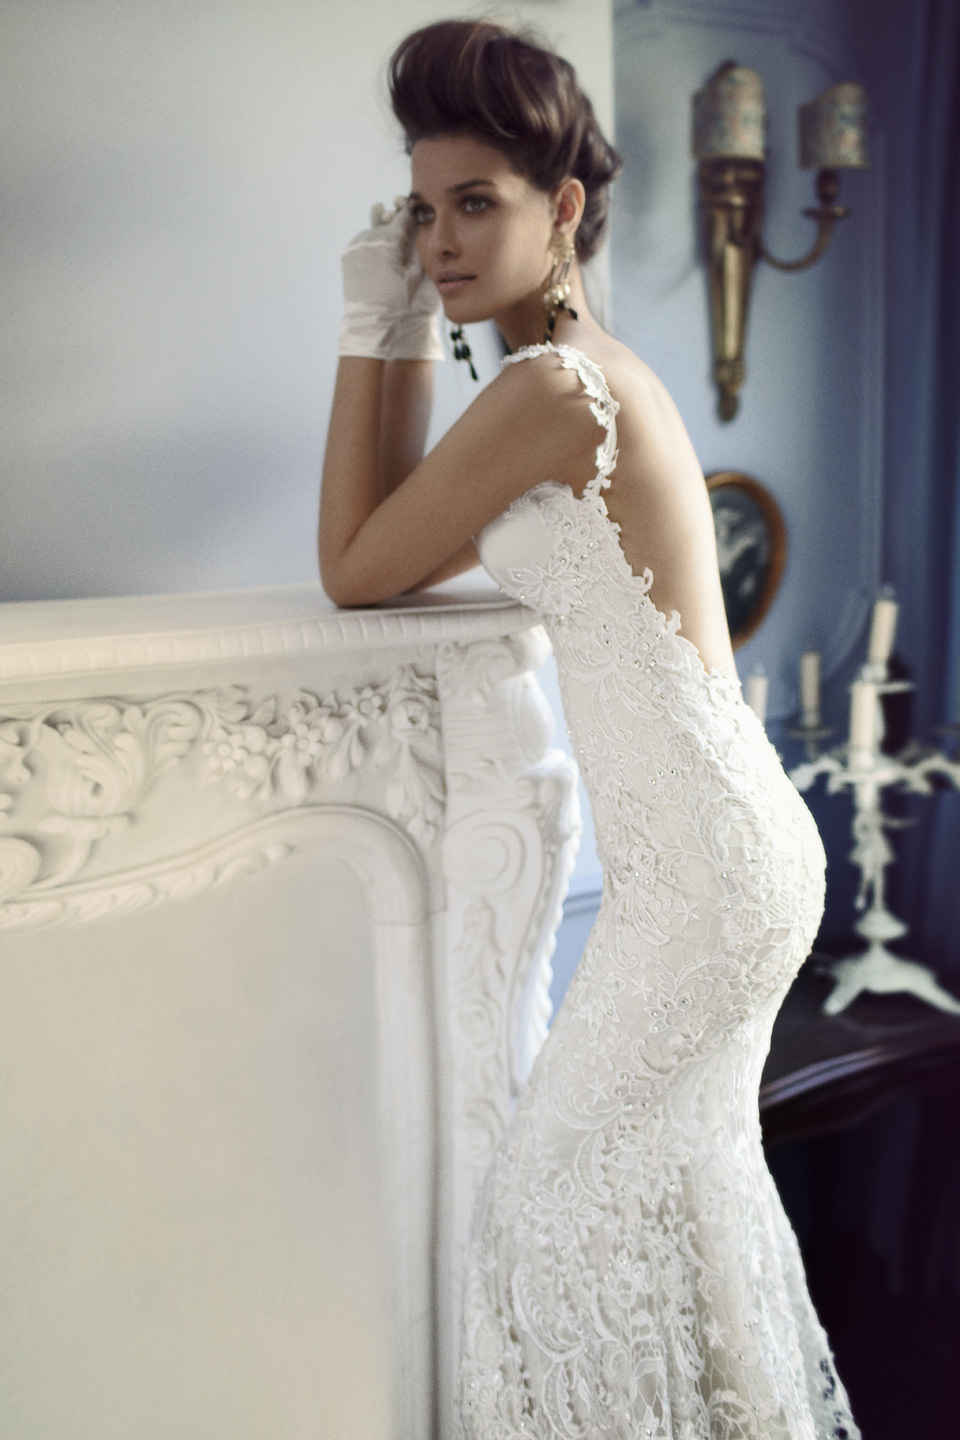 Lace Wedding Dress with Crystal Beads